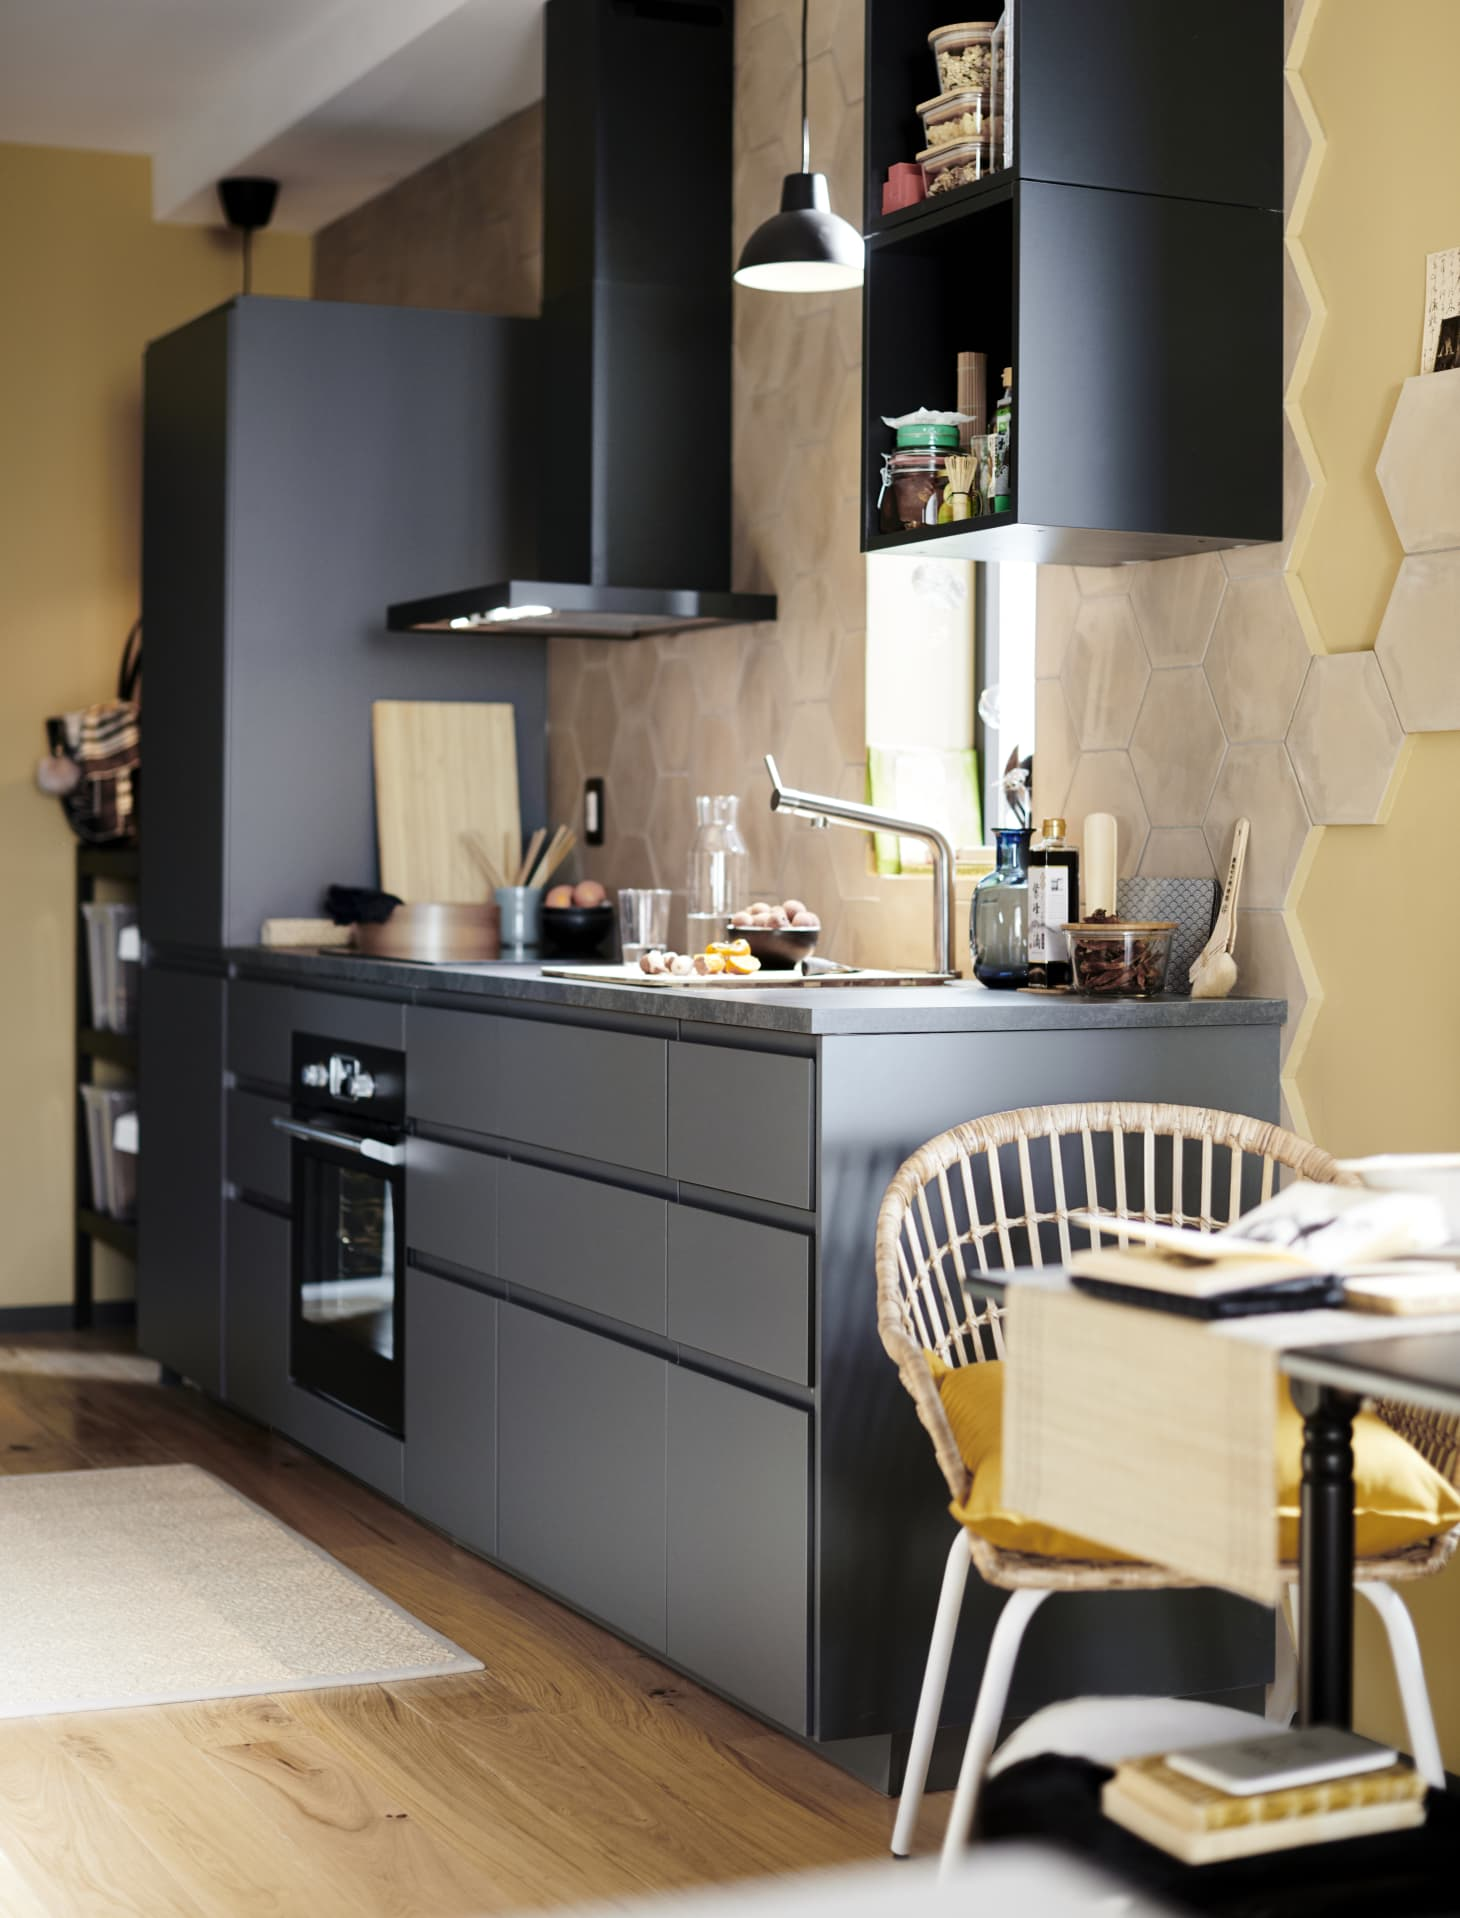 IKEA Catalog 2020 Home Trends | Apartment Therapy